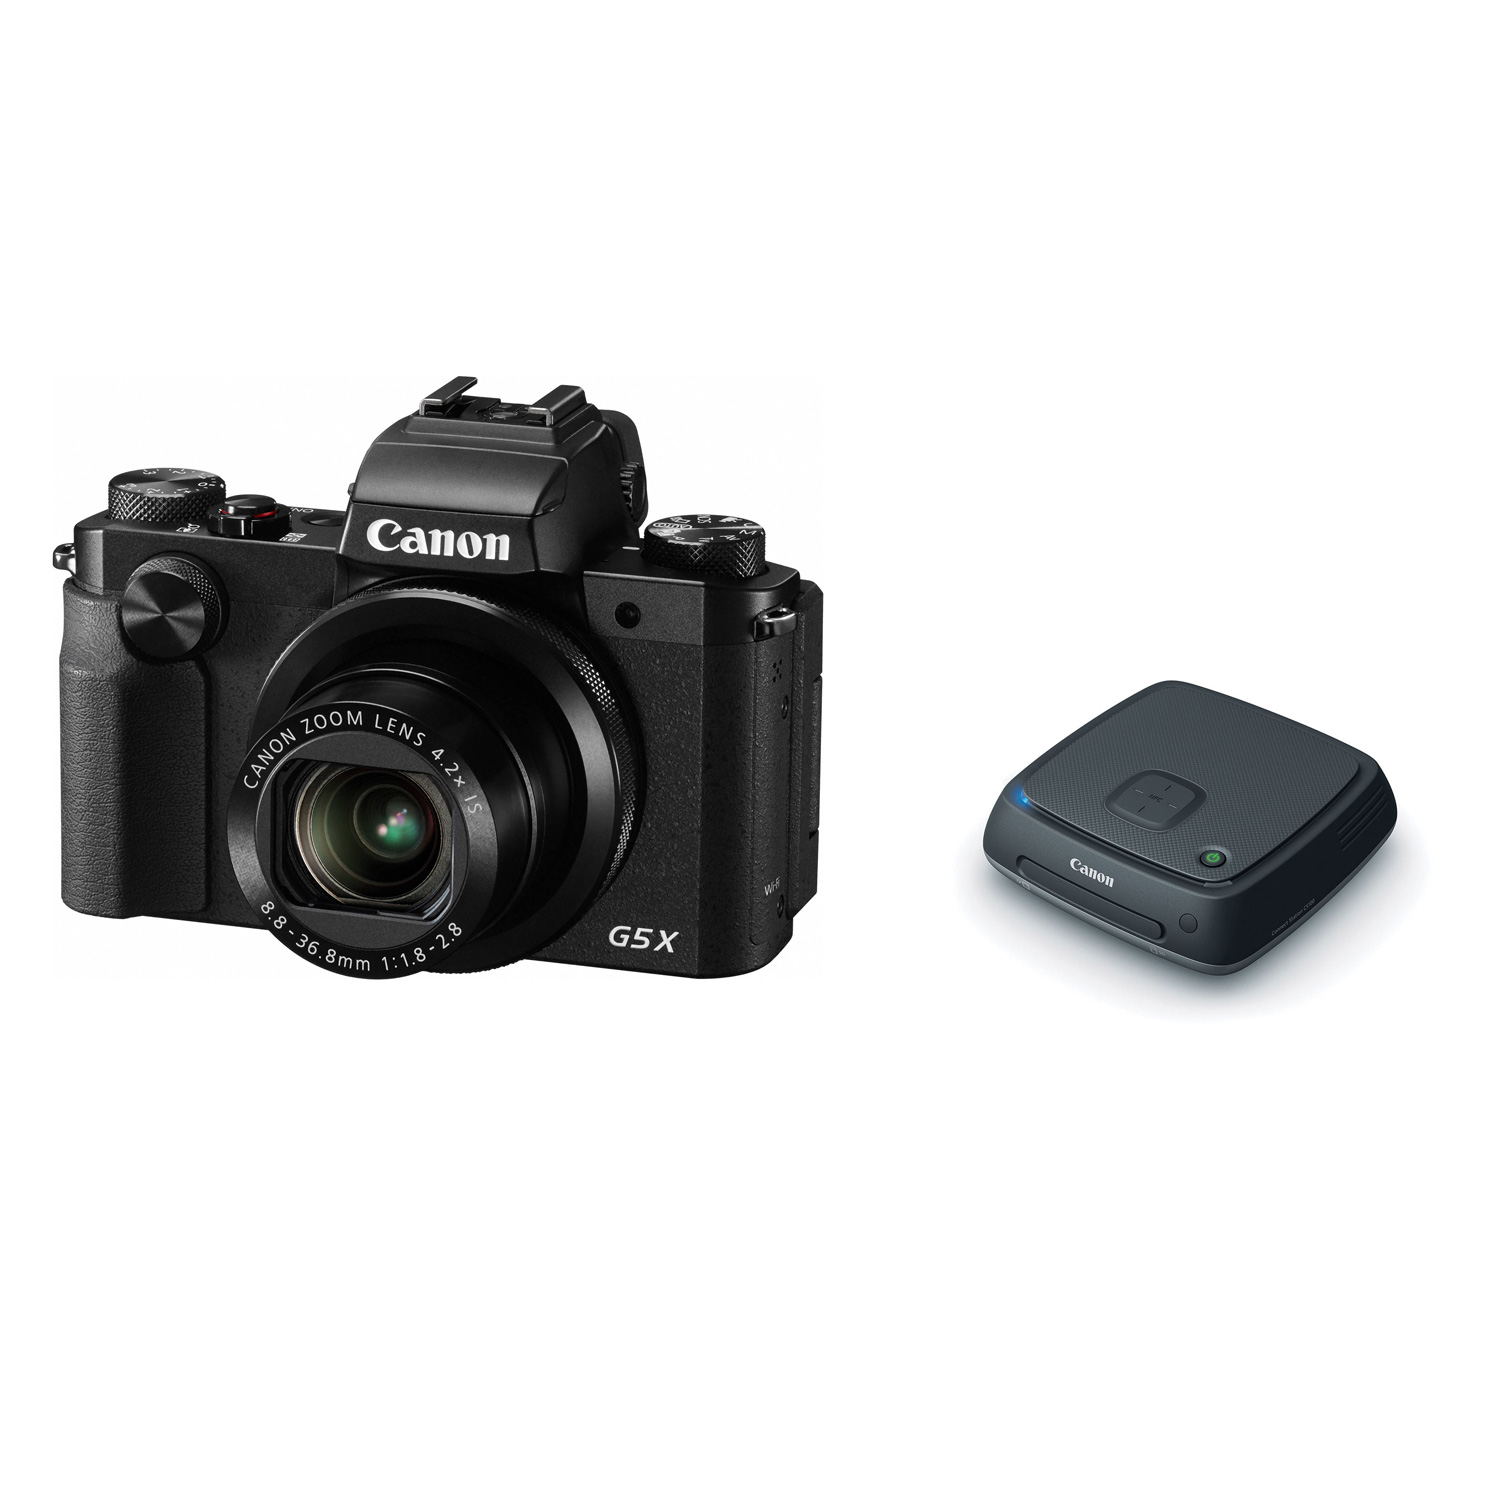 Canon Powershot G5 X Digital Camera With Connect Station Cs100 G3 Wi Fi And Nfc